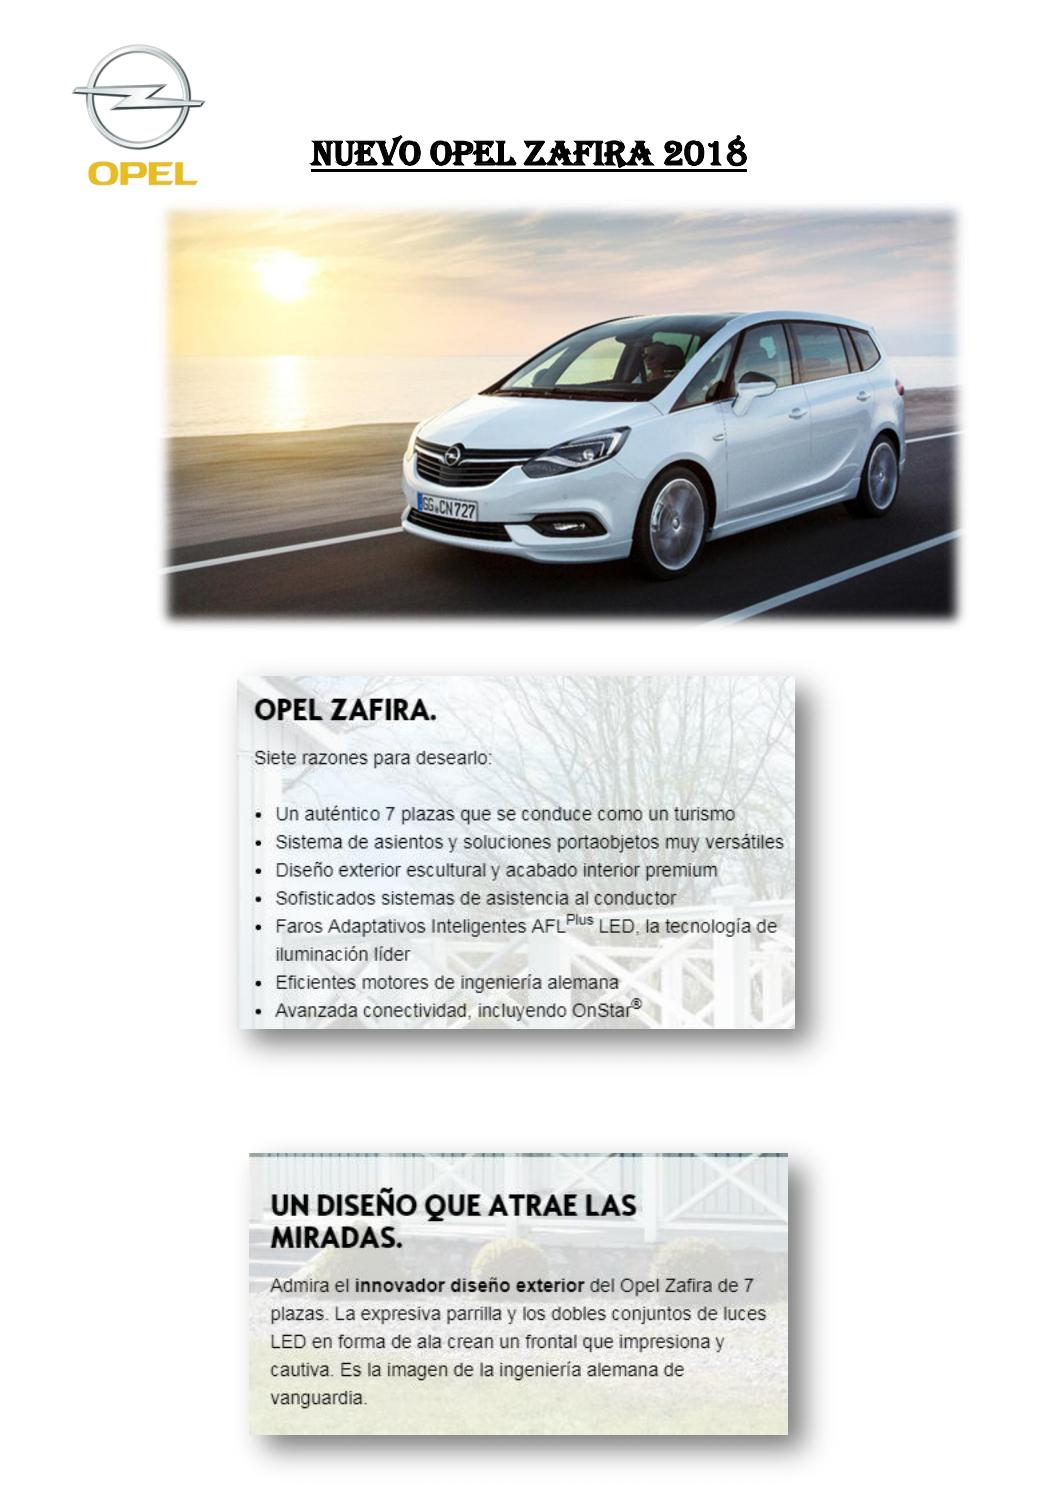 Nuevo opel zafira 2018 by FRANCISCO - issuu d9c7b16016a